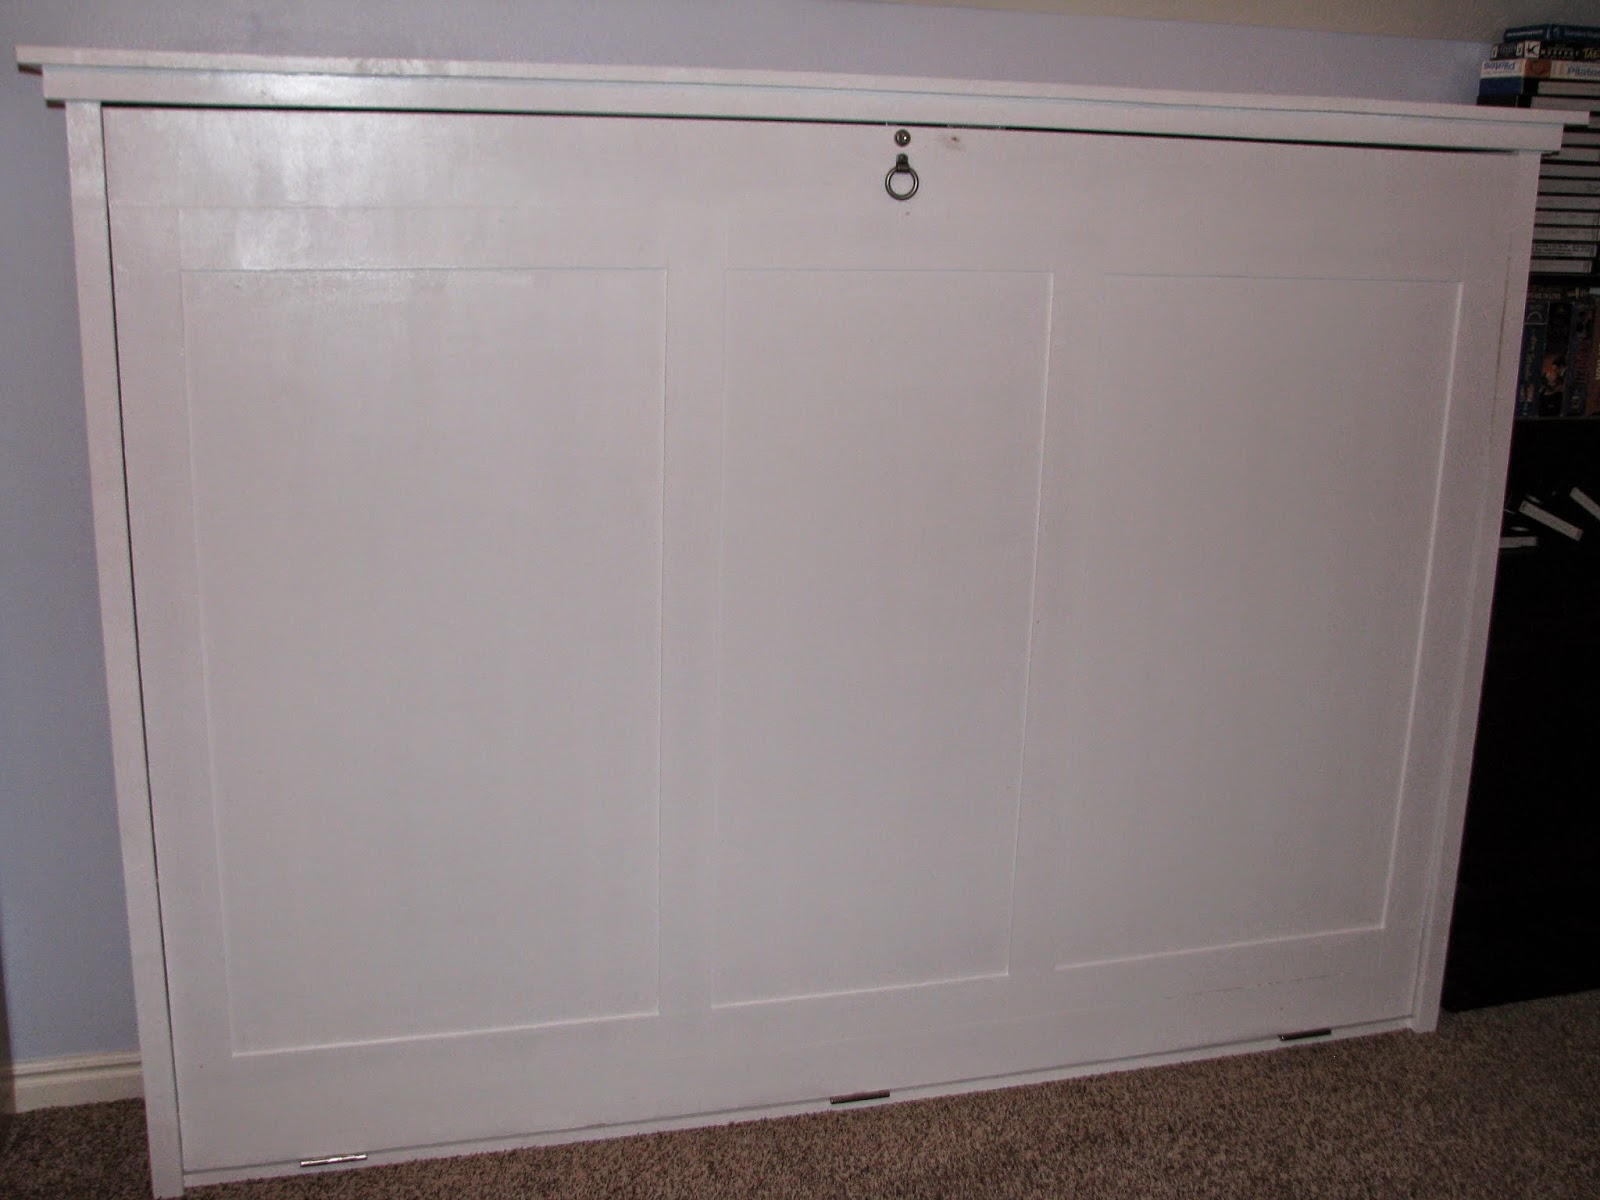 http://www.mysocalleddiyblog.com/2014/10/project-bonus-room-diy-murphy-bed.html